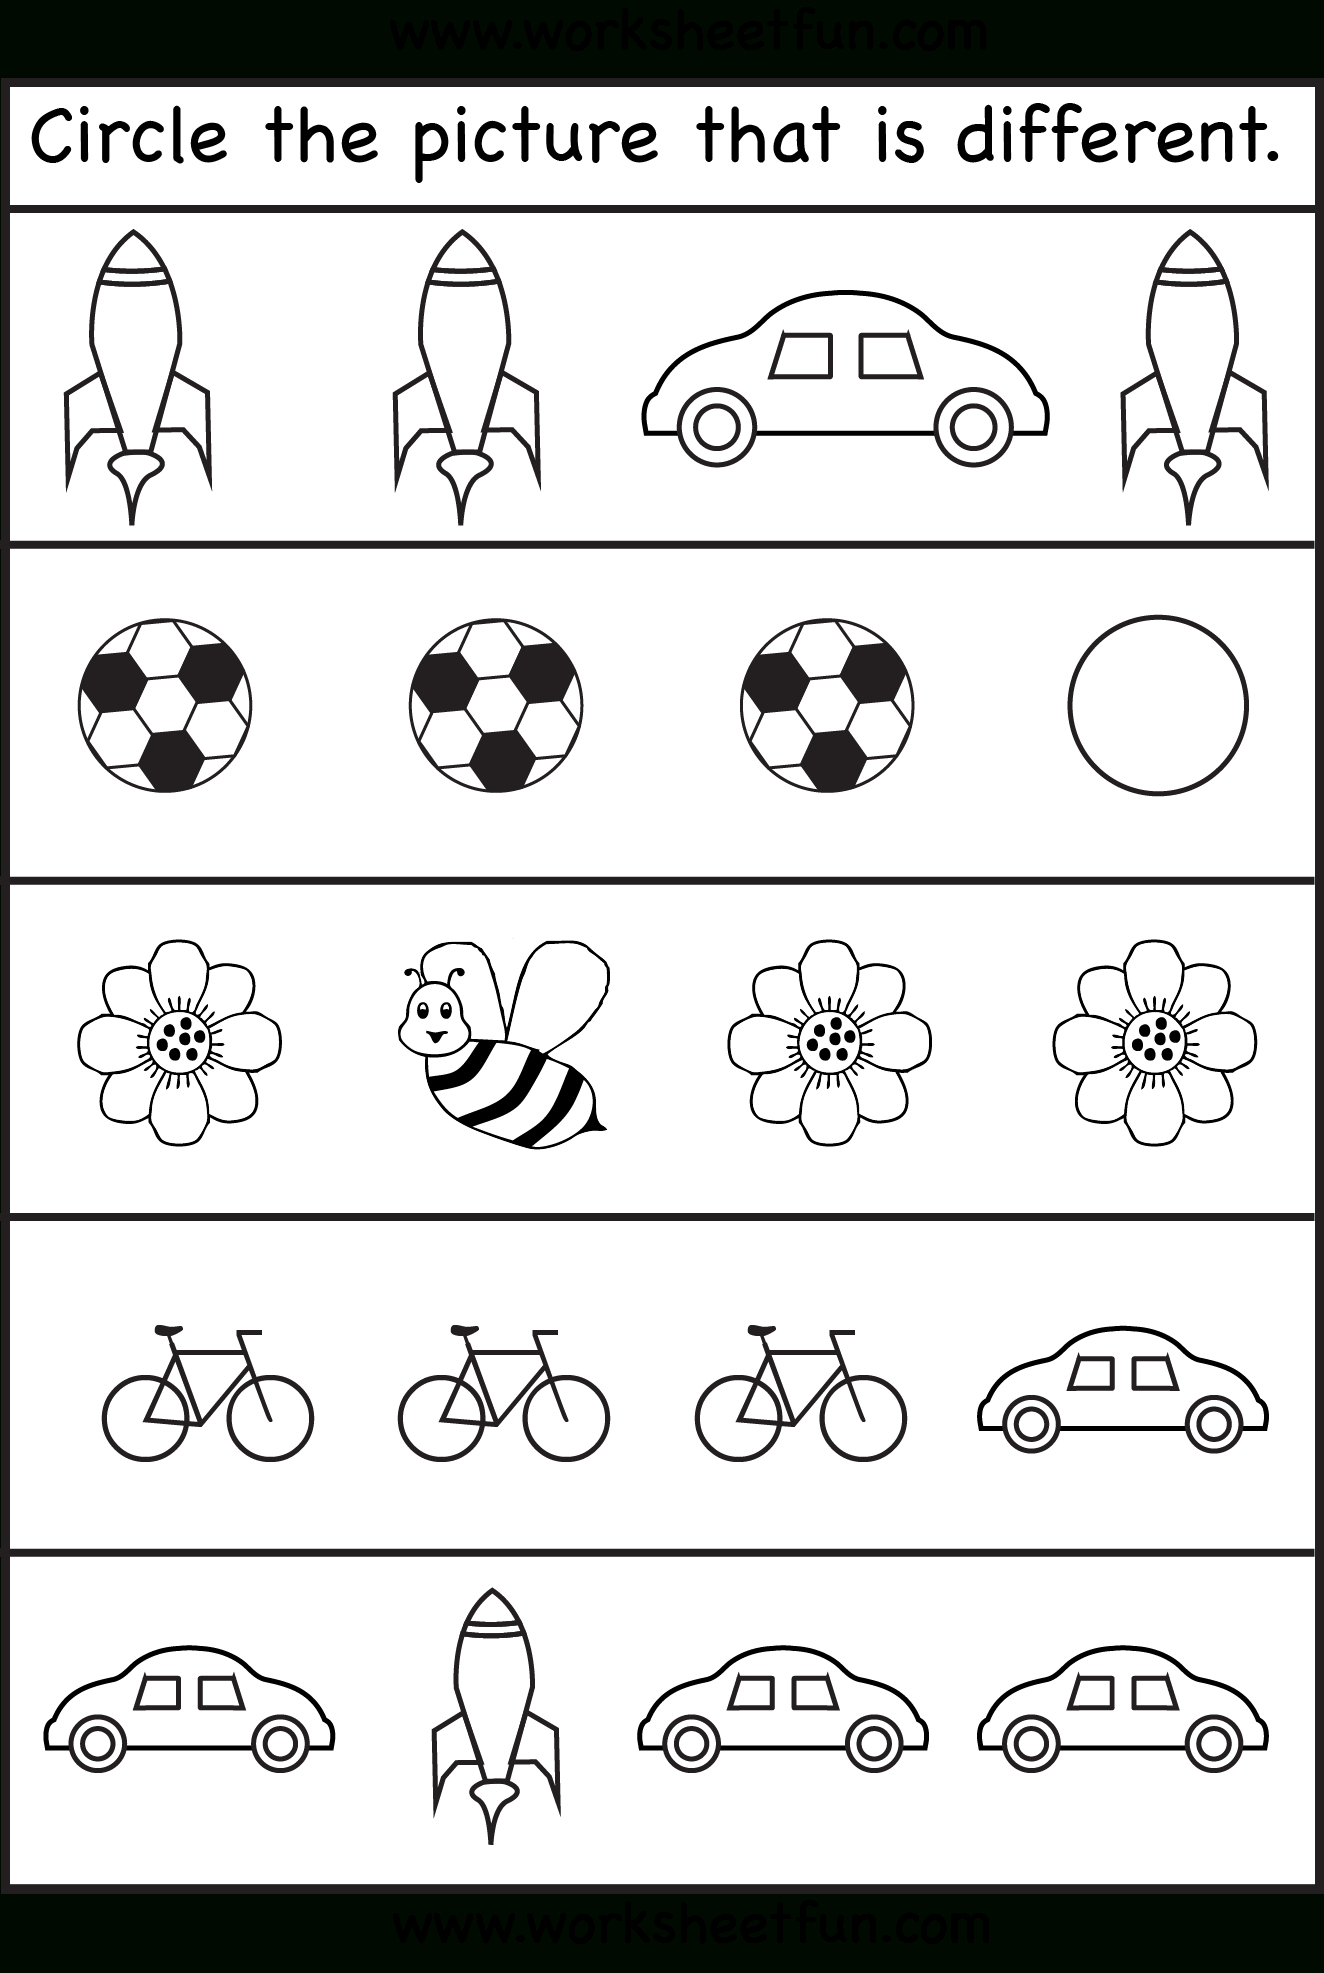 Circle The Picture That Is Different - 4 Worksheets | Printable - Free Printable Learning Pages For Toddlers